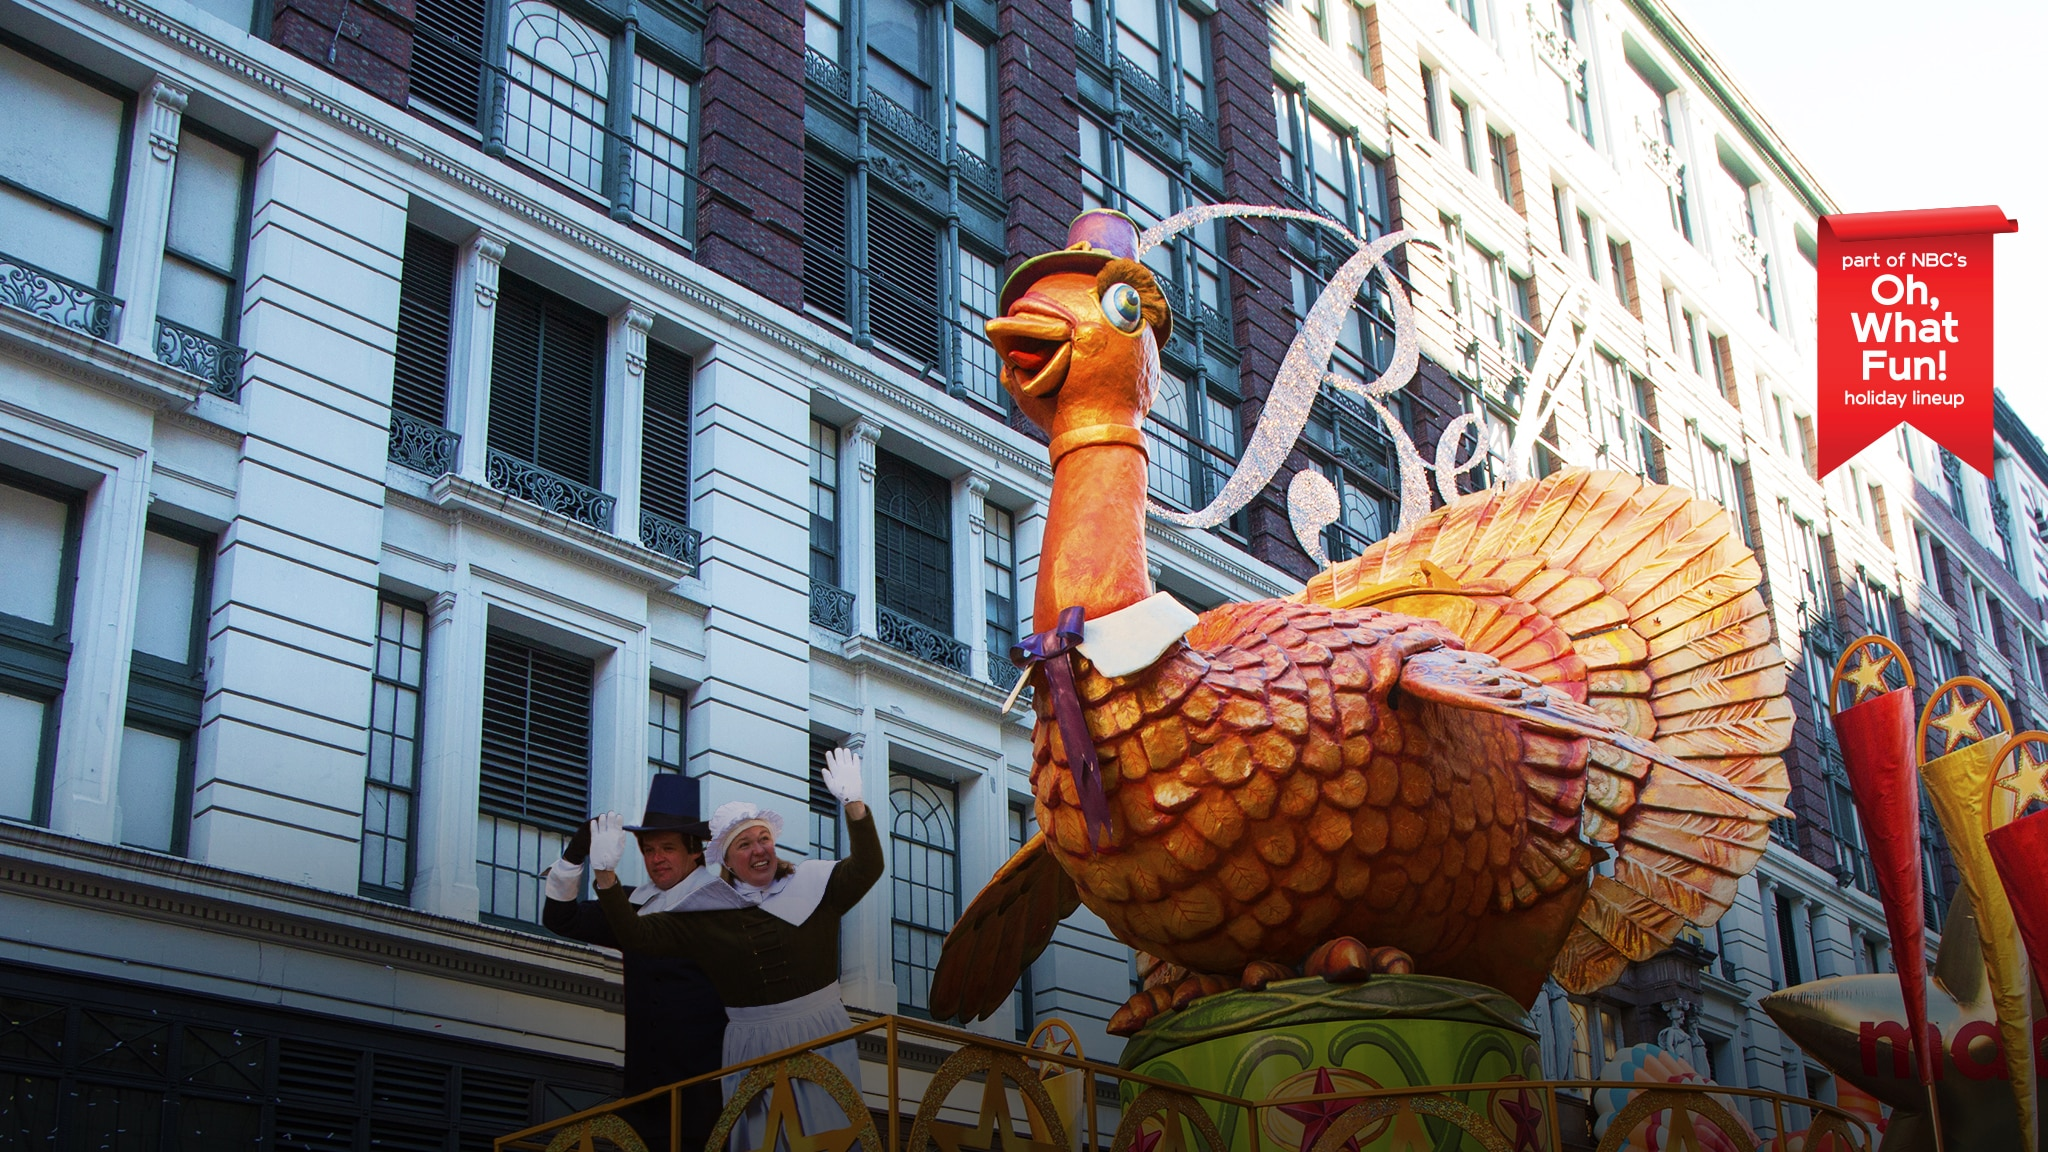 Nbc Christmas Schedule 2020 Macy's Thanksgiving Day Parade   NBC.com